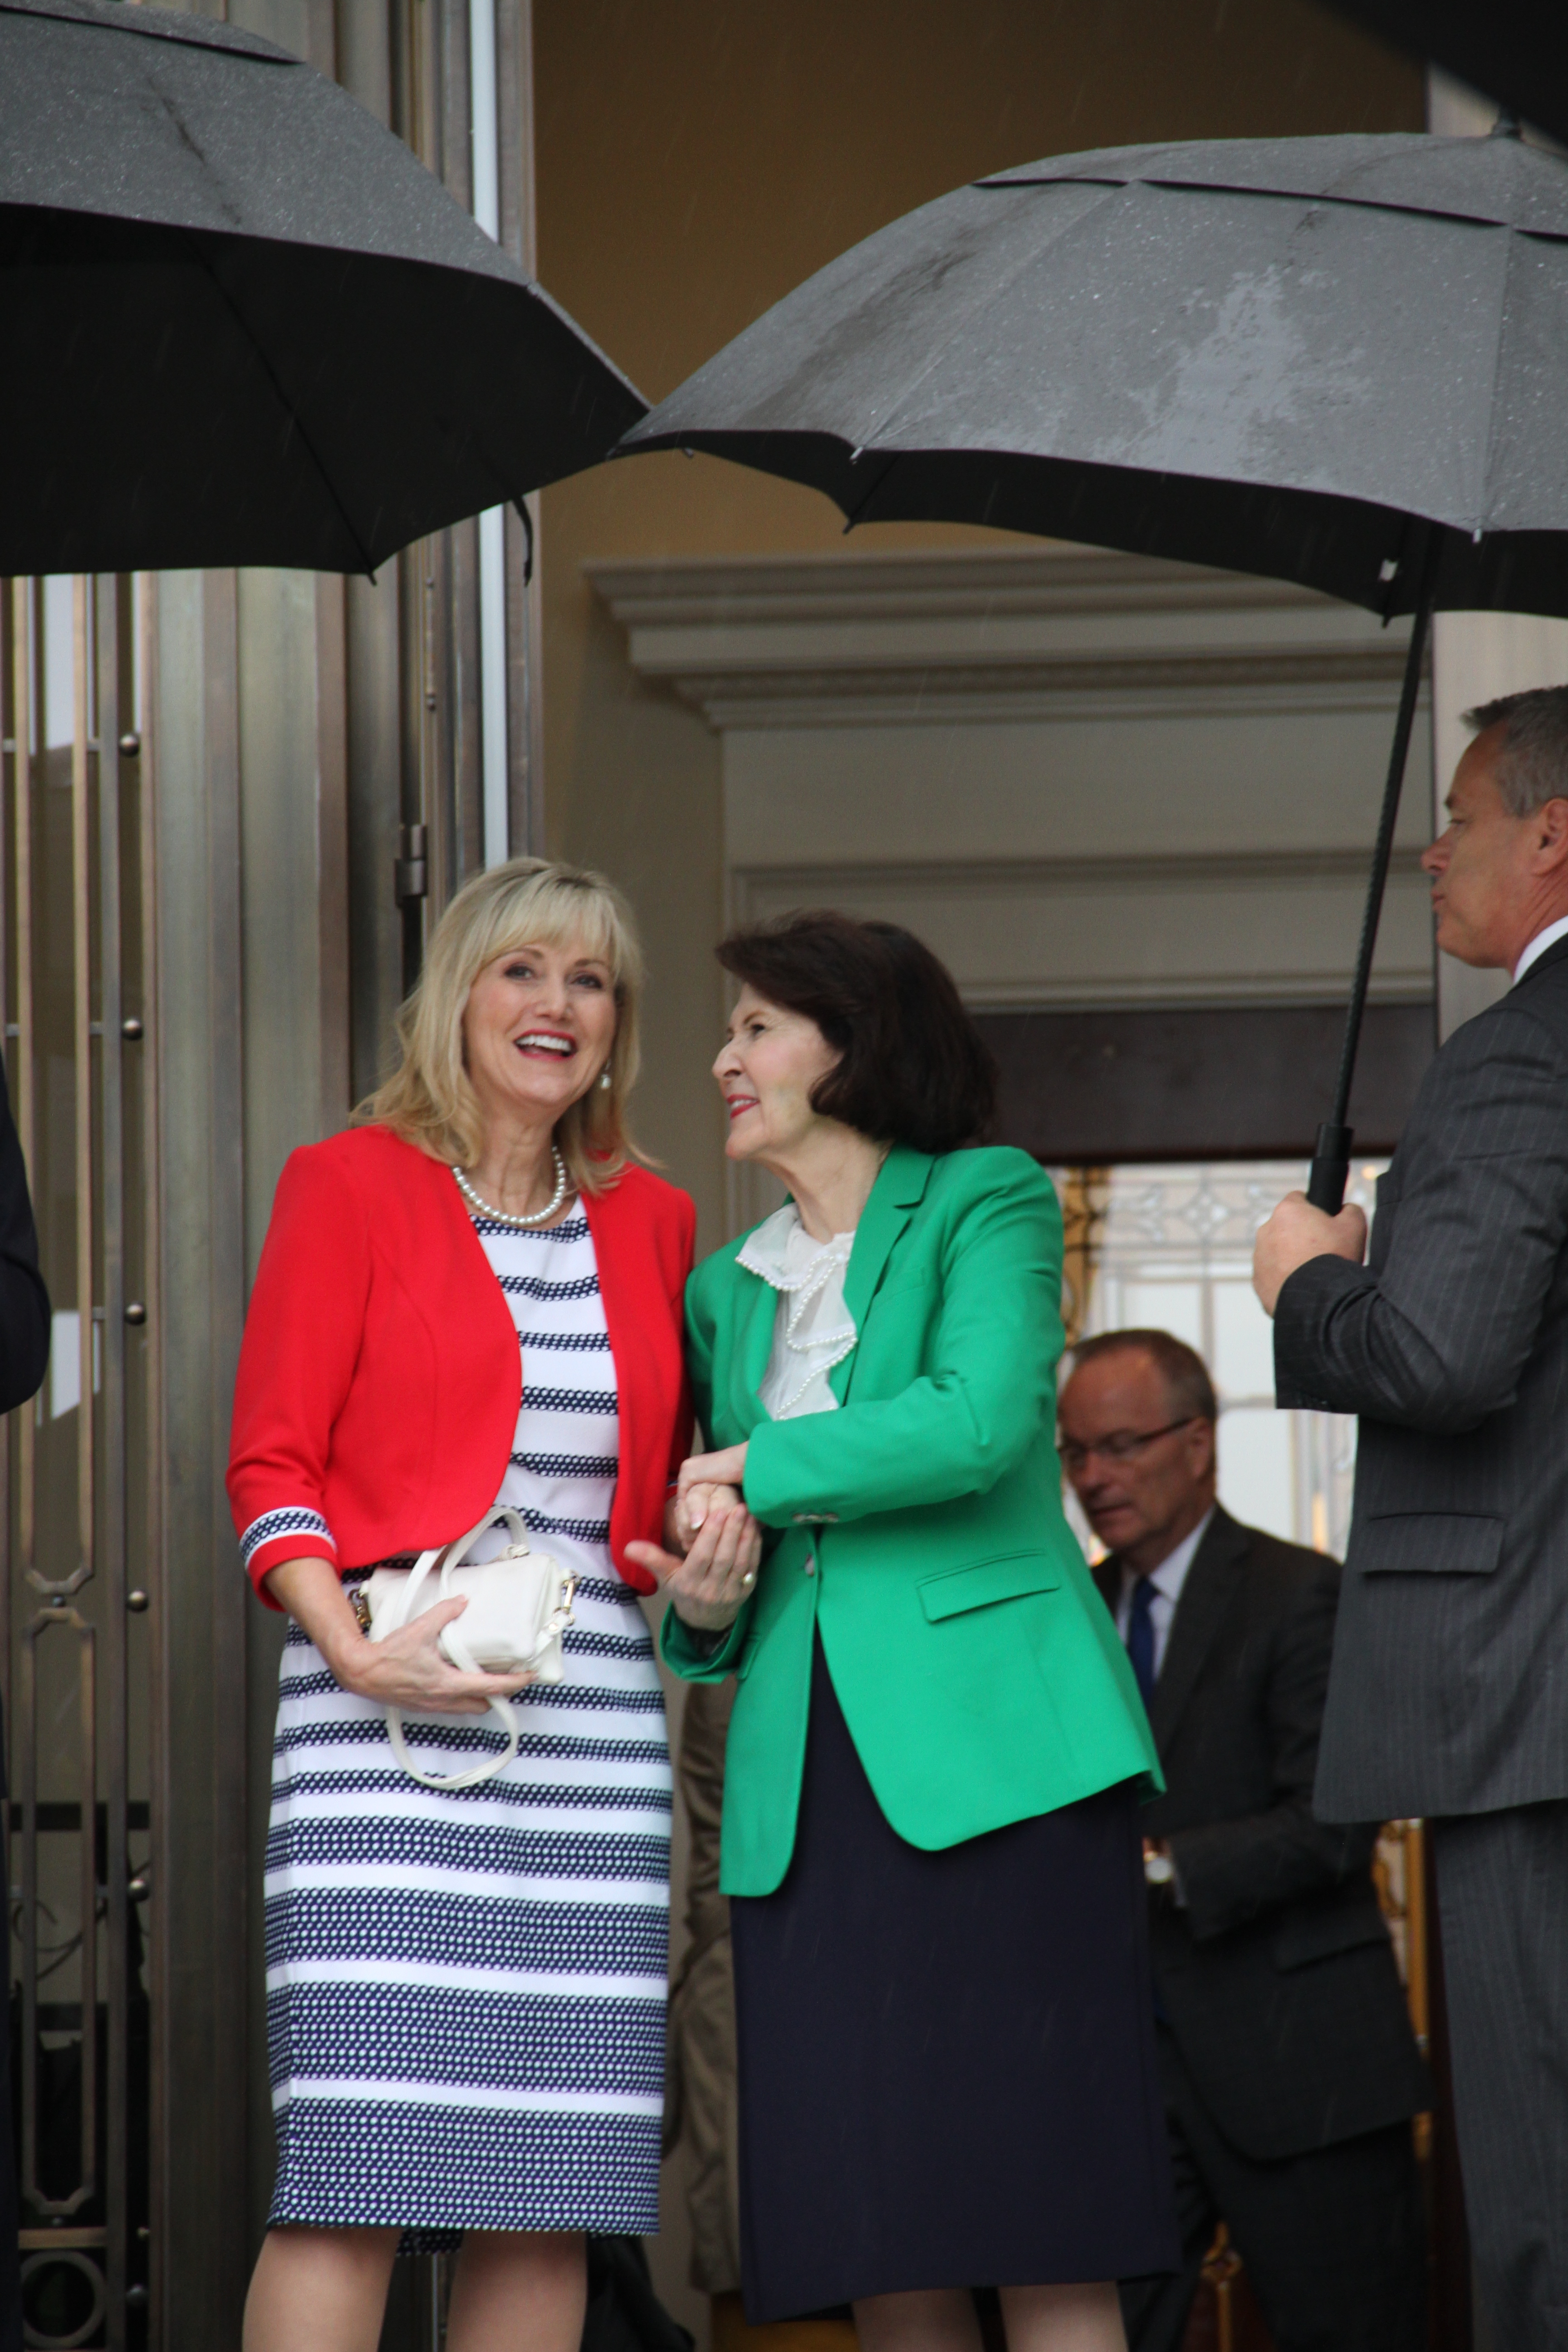 Sister Patricia Holland, right, and Sister Karen Beheshti chat outside the Memphis Tennessee Temple after touring through the recently renovated temple on May 4, 2019.